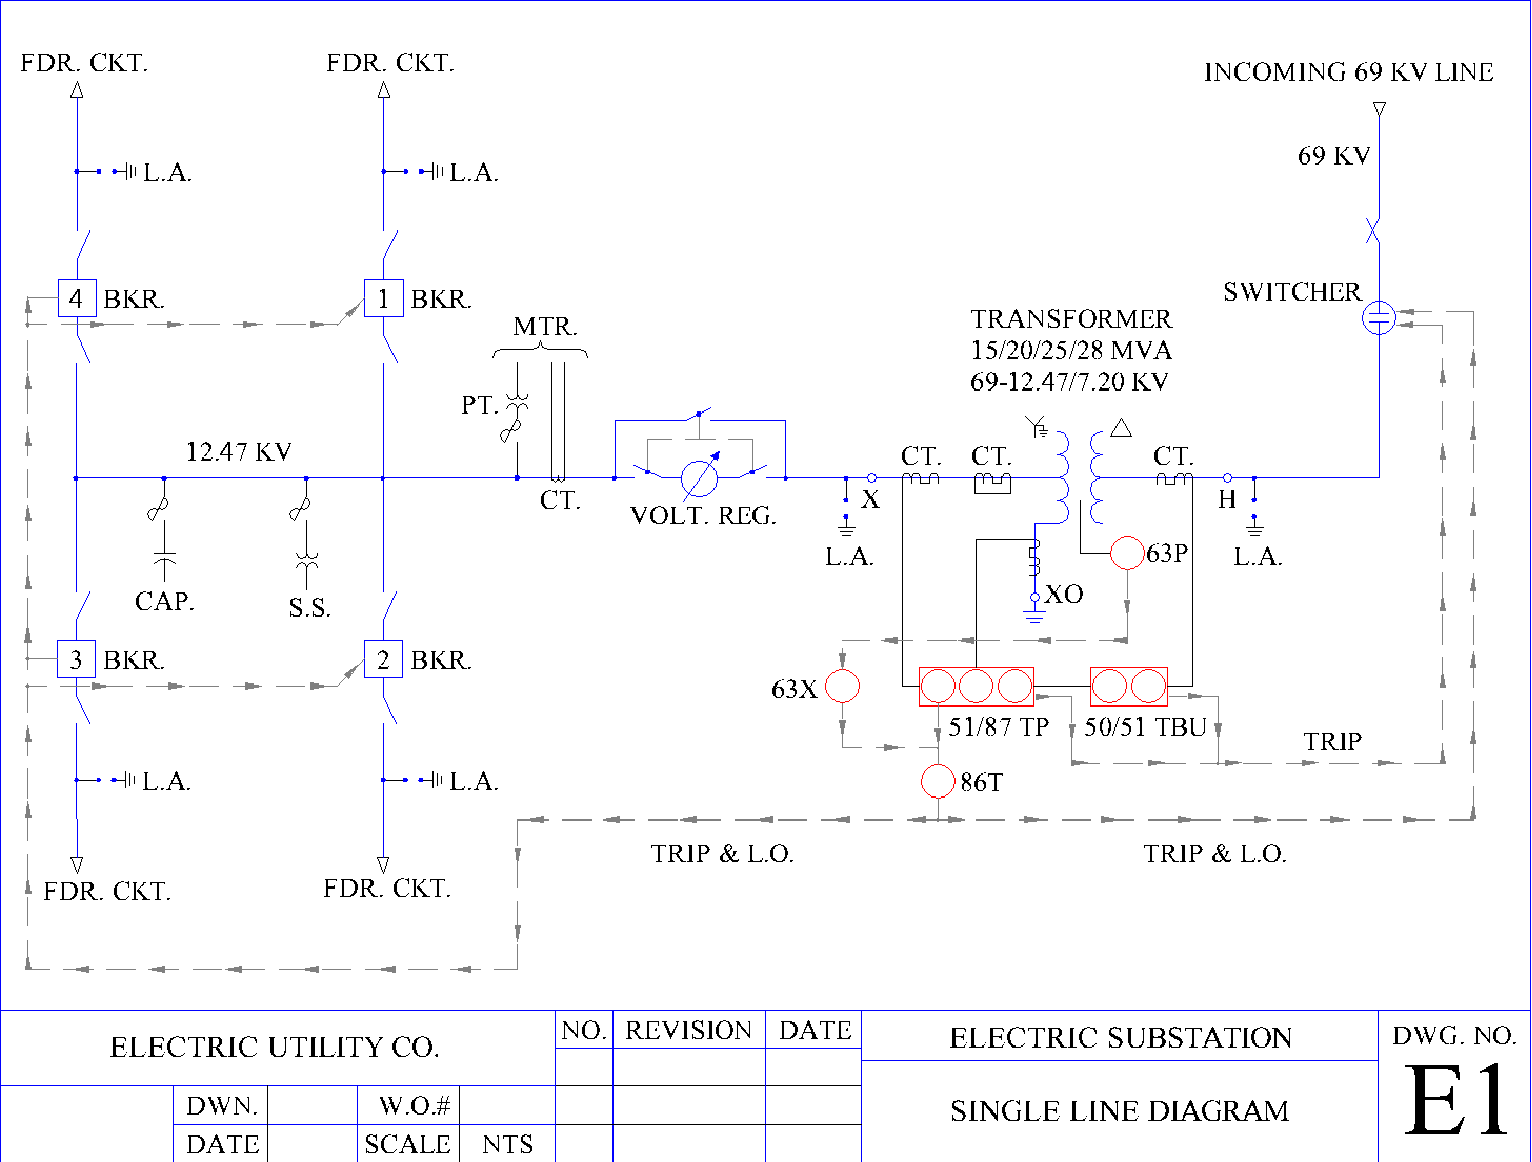 Figure 4 from Schematic representation of power system ... on one line electrical motor control, single sample t-test example, overhead power line, power system harmonics, distribution board, circuit breaker, construction site plan example, functional flow block diagram, earthing system, one line diagrams double feeder, one line electrical drawing example, one line drawing electrical panel, circuit diagram, straight-line diagram, overhead line, block diagram, single-phase electric power, one line farm silos, one to many relationship diagram, earth leakage circuit breaker, electricity distribution, data flow diagram, one line symbols ieee, free body diagram,